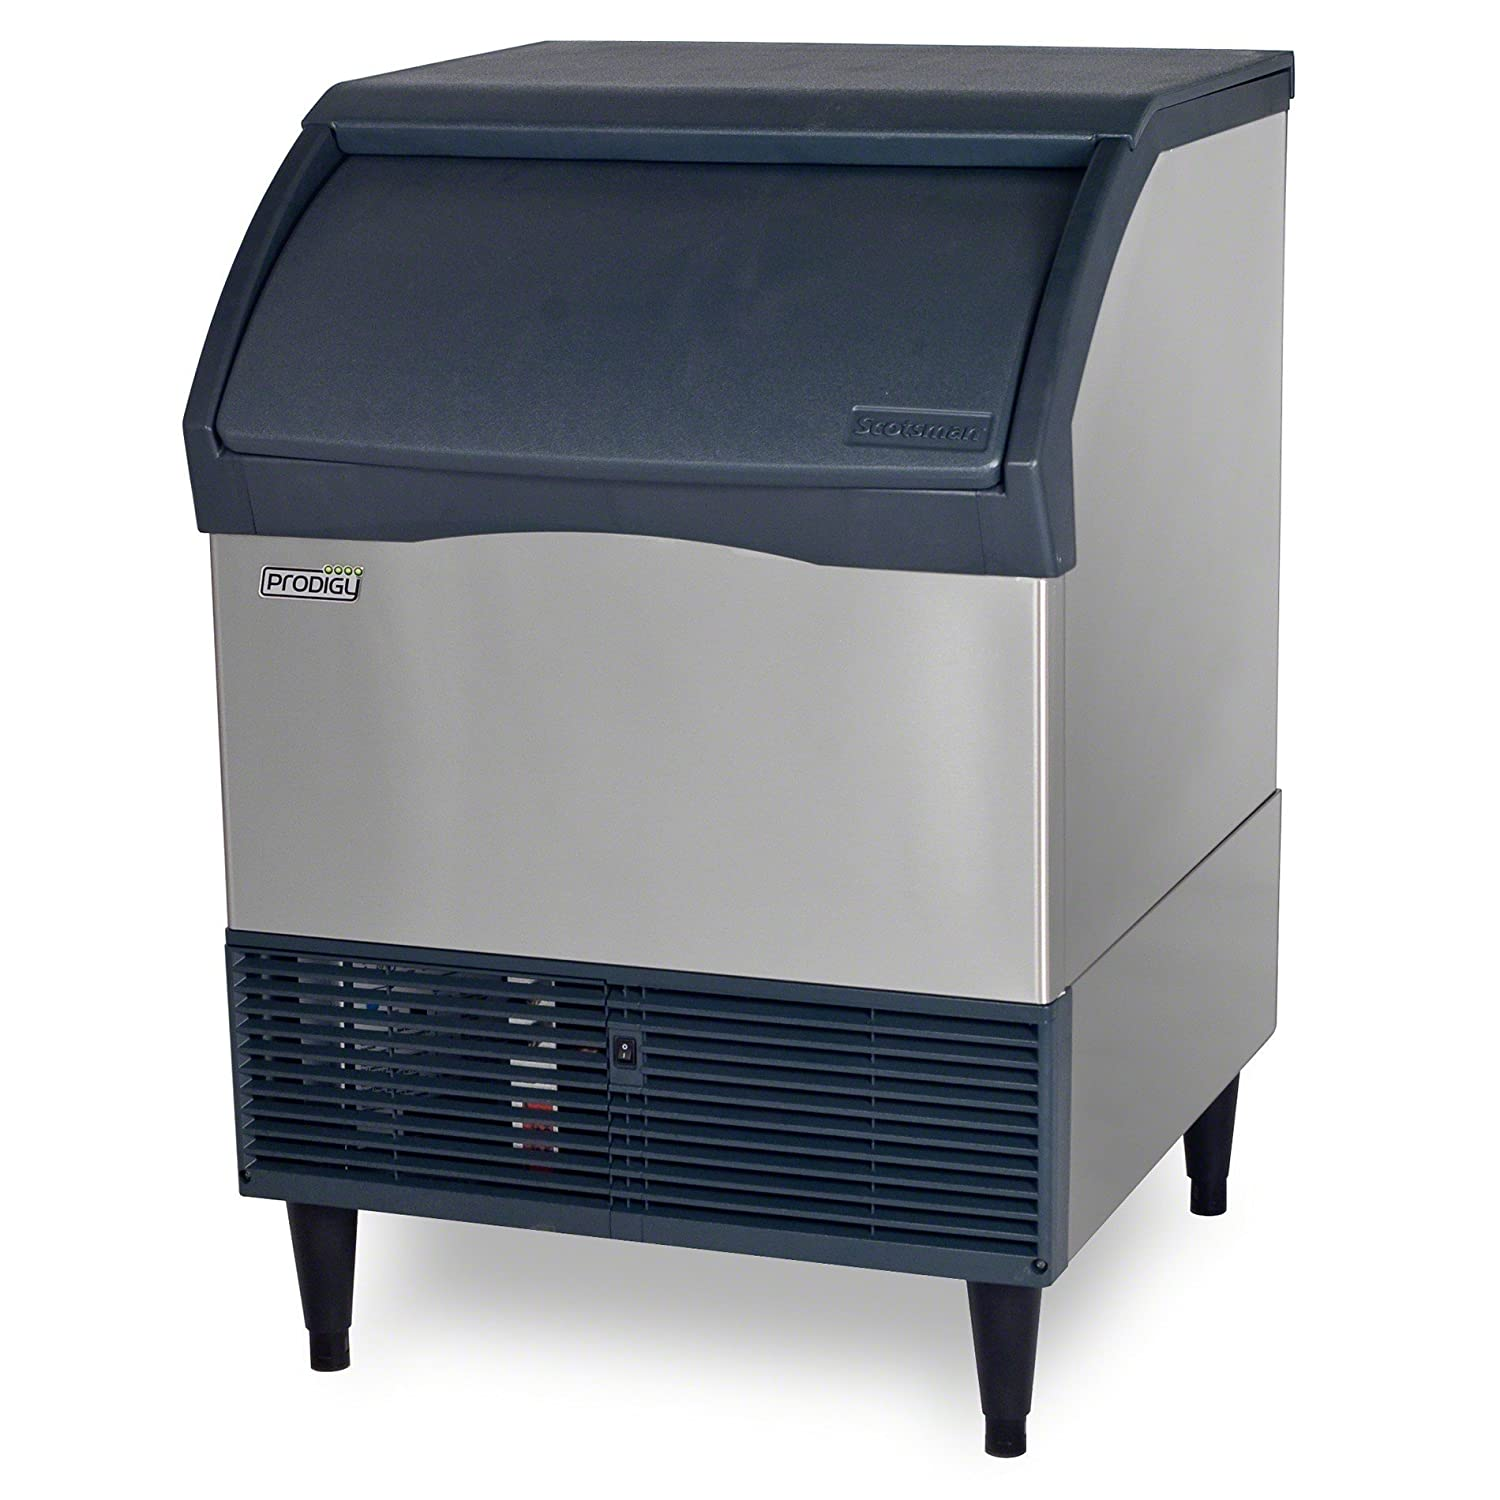 Scotsman CU2026SA-6 Air Cooled Small Cube Ice Machine with Bin (up to 192 lbs per 24 hrs/79 lb storage) 230V/50/1Ph